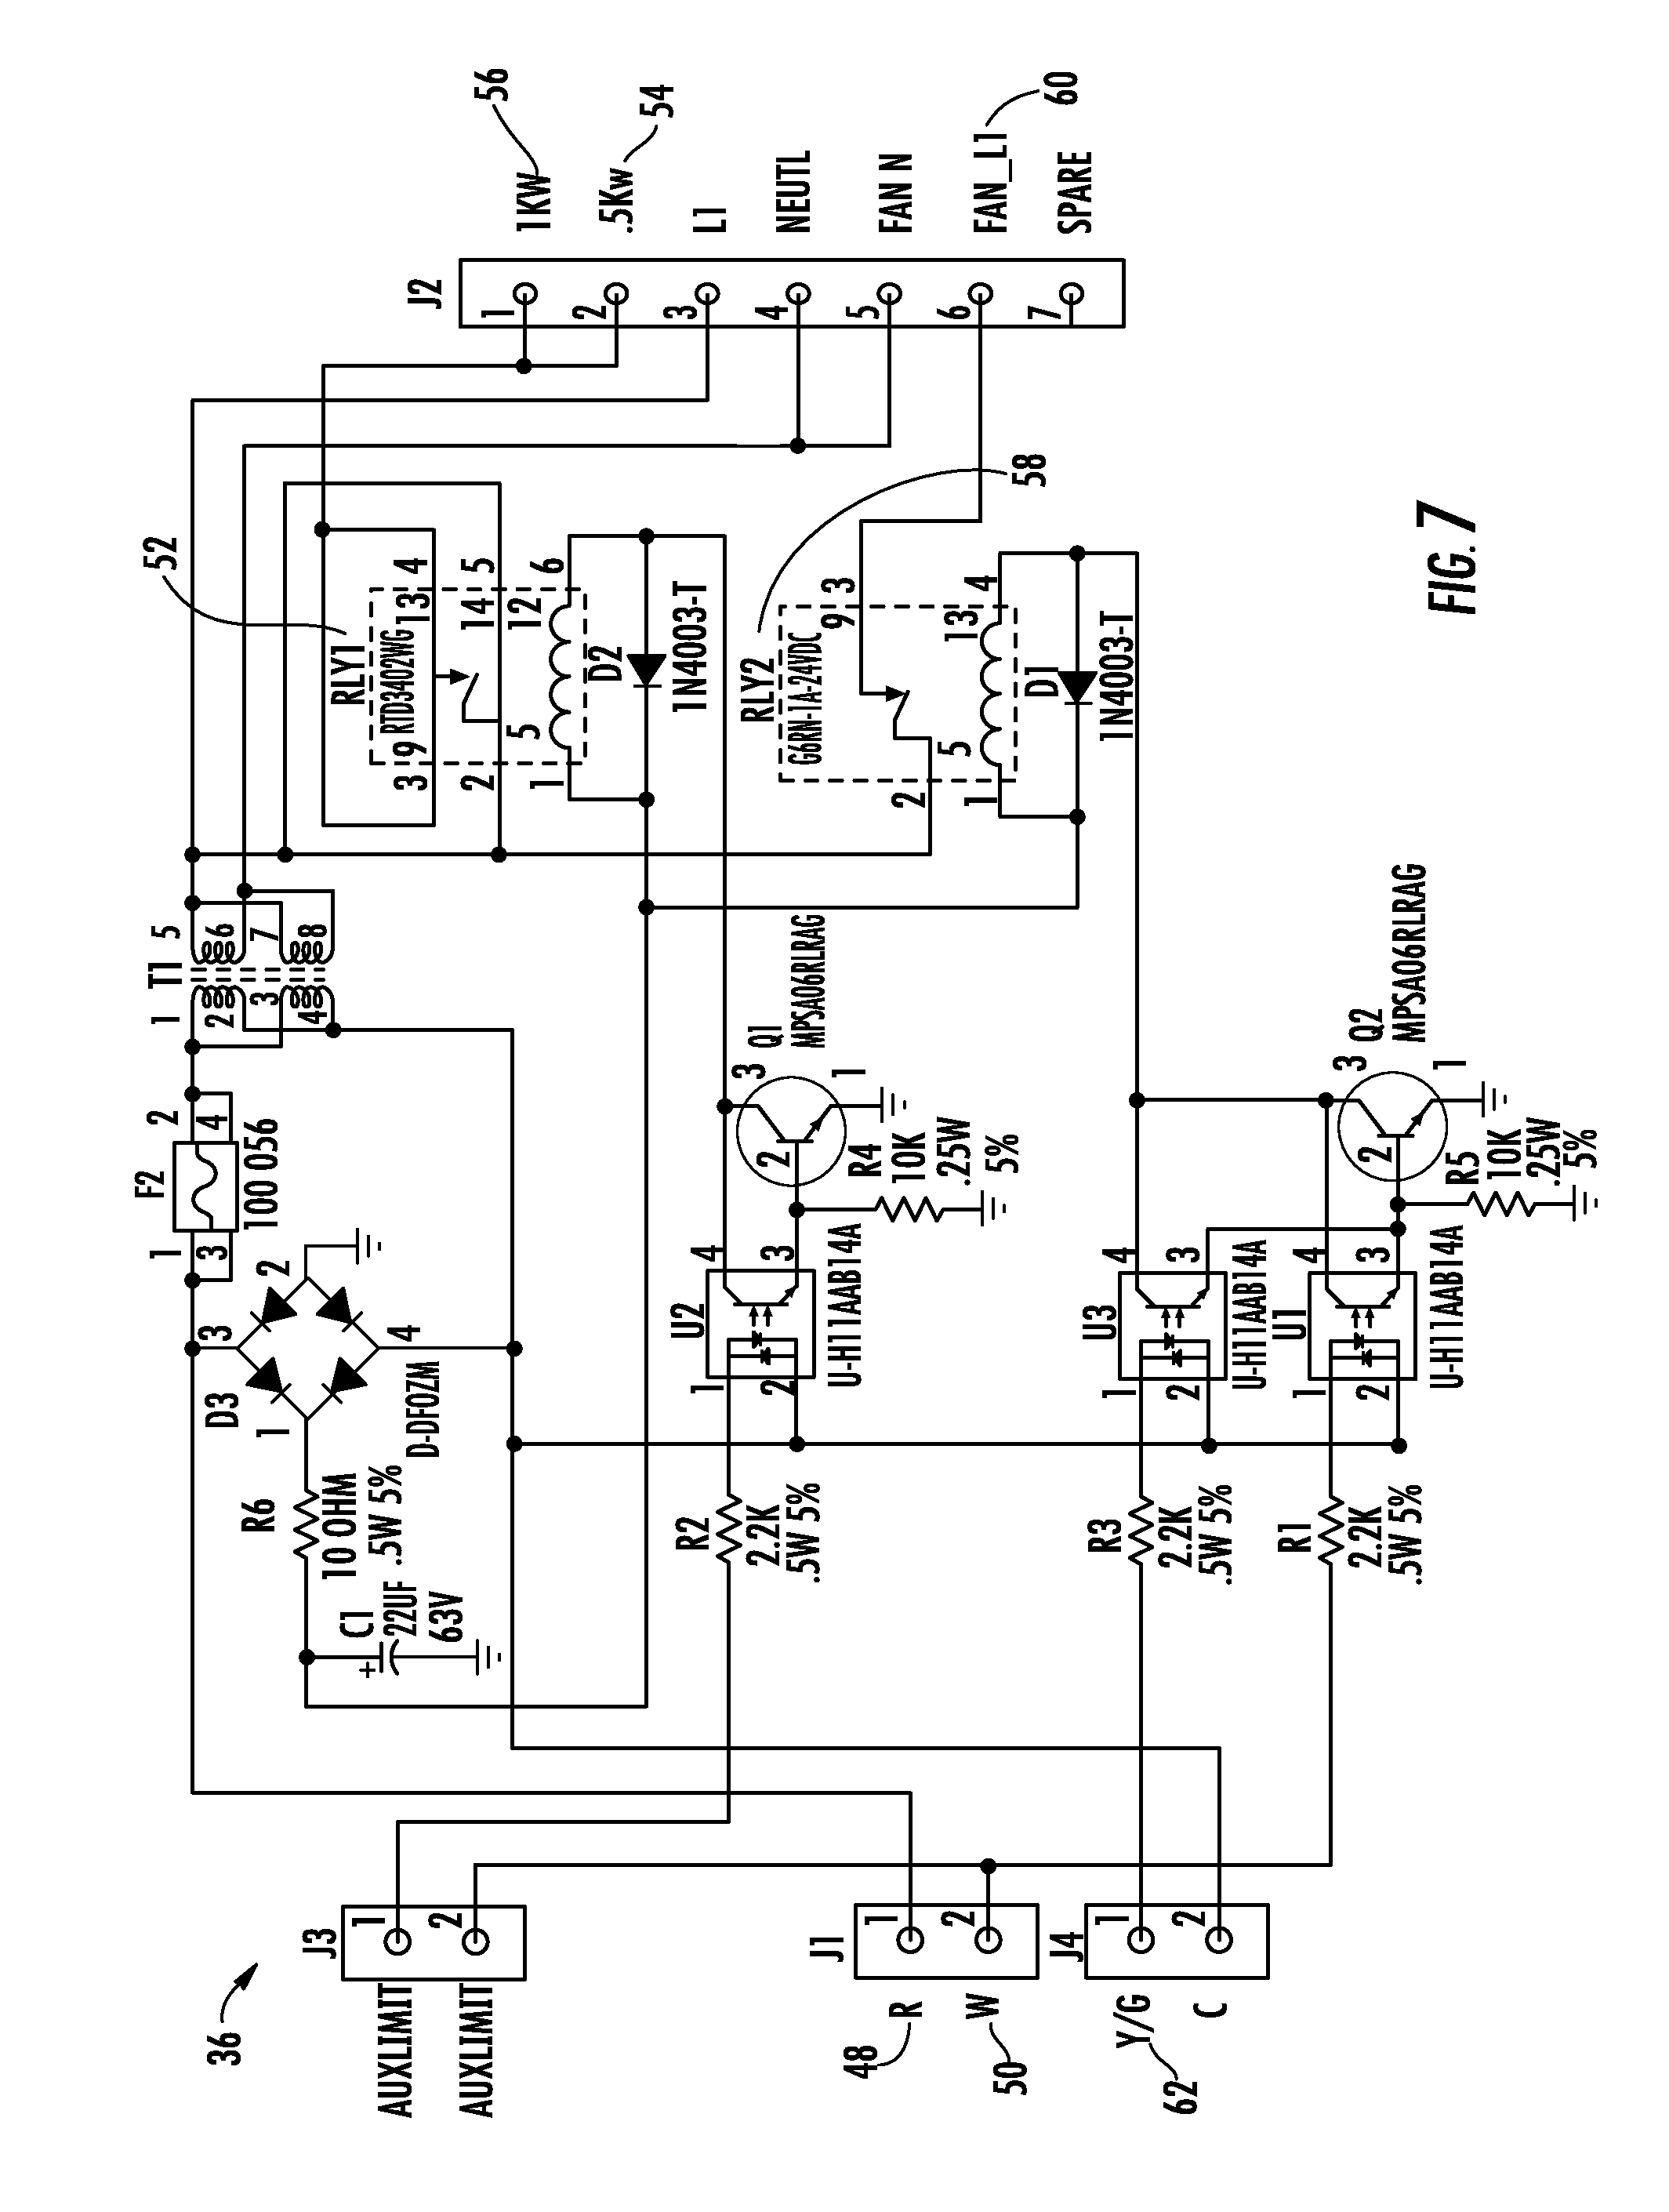 Honeywell Chronotherm Iv Plus Wiring Diagram 44 Thermostat Iii Us08837922 20140916 D00007 Patent Us8837922 In Line Duct Supplemental Heating And Cooling